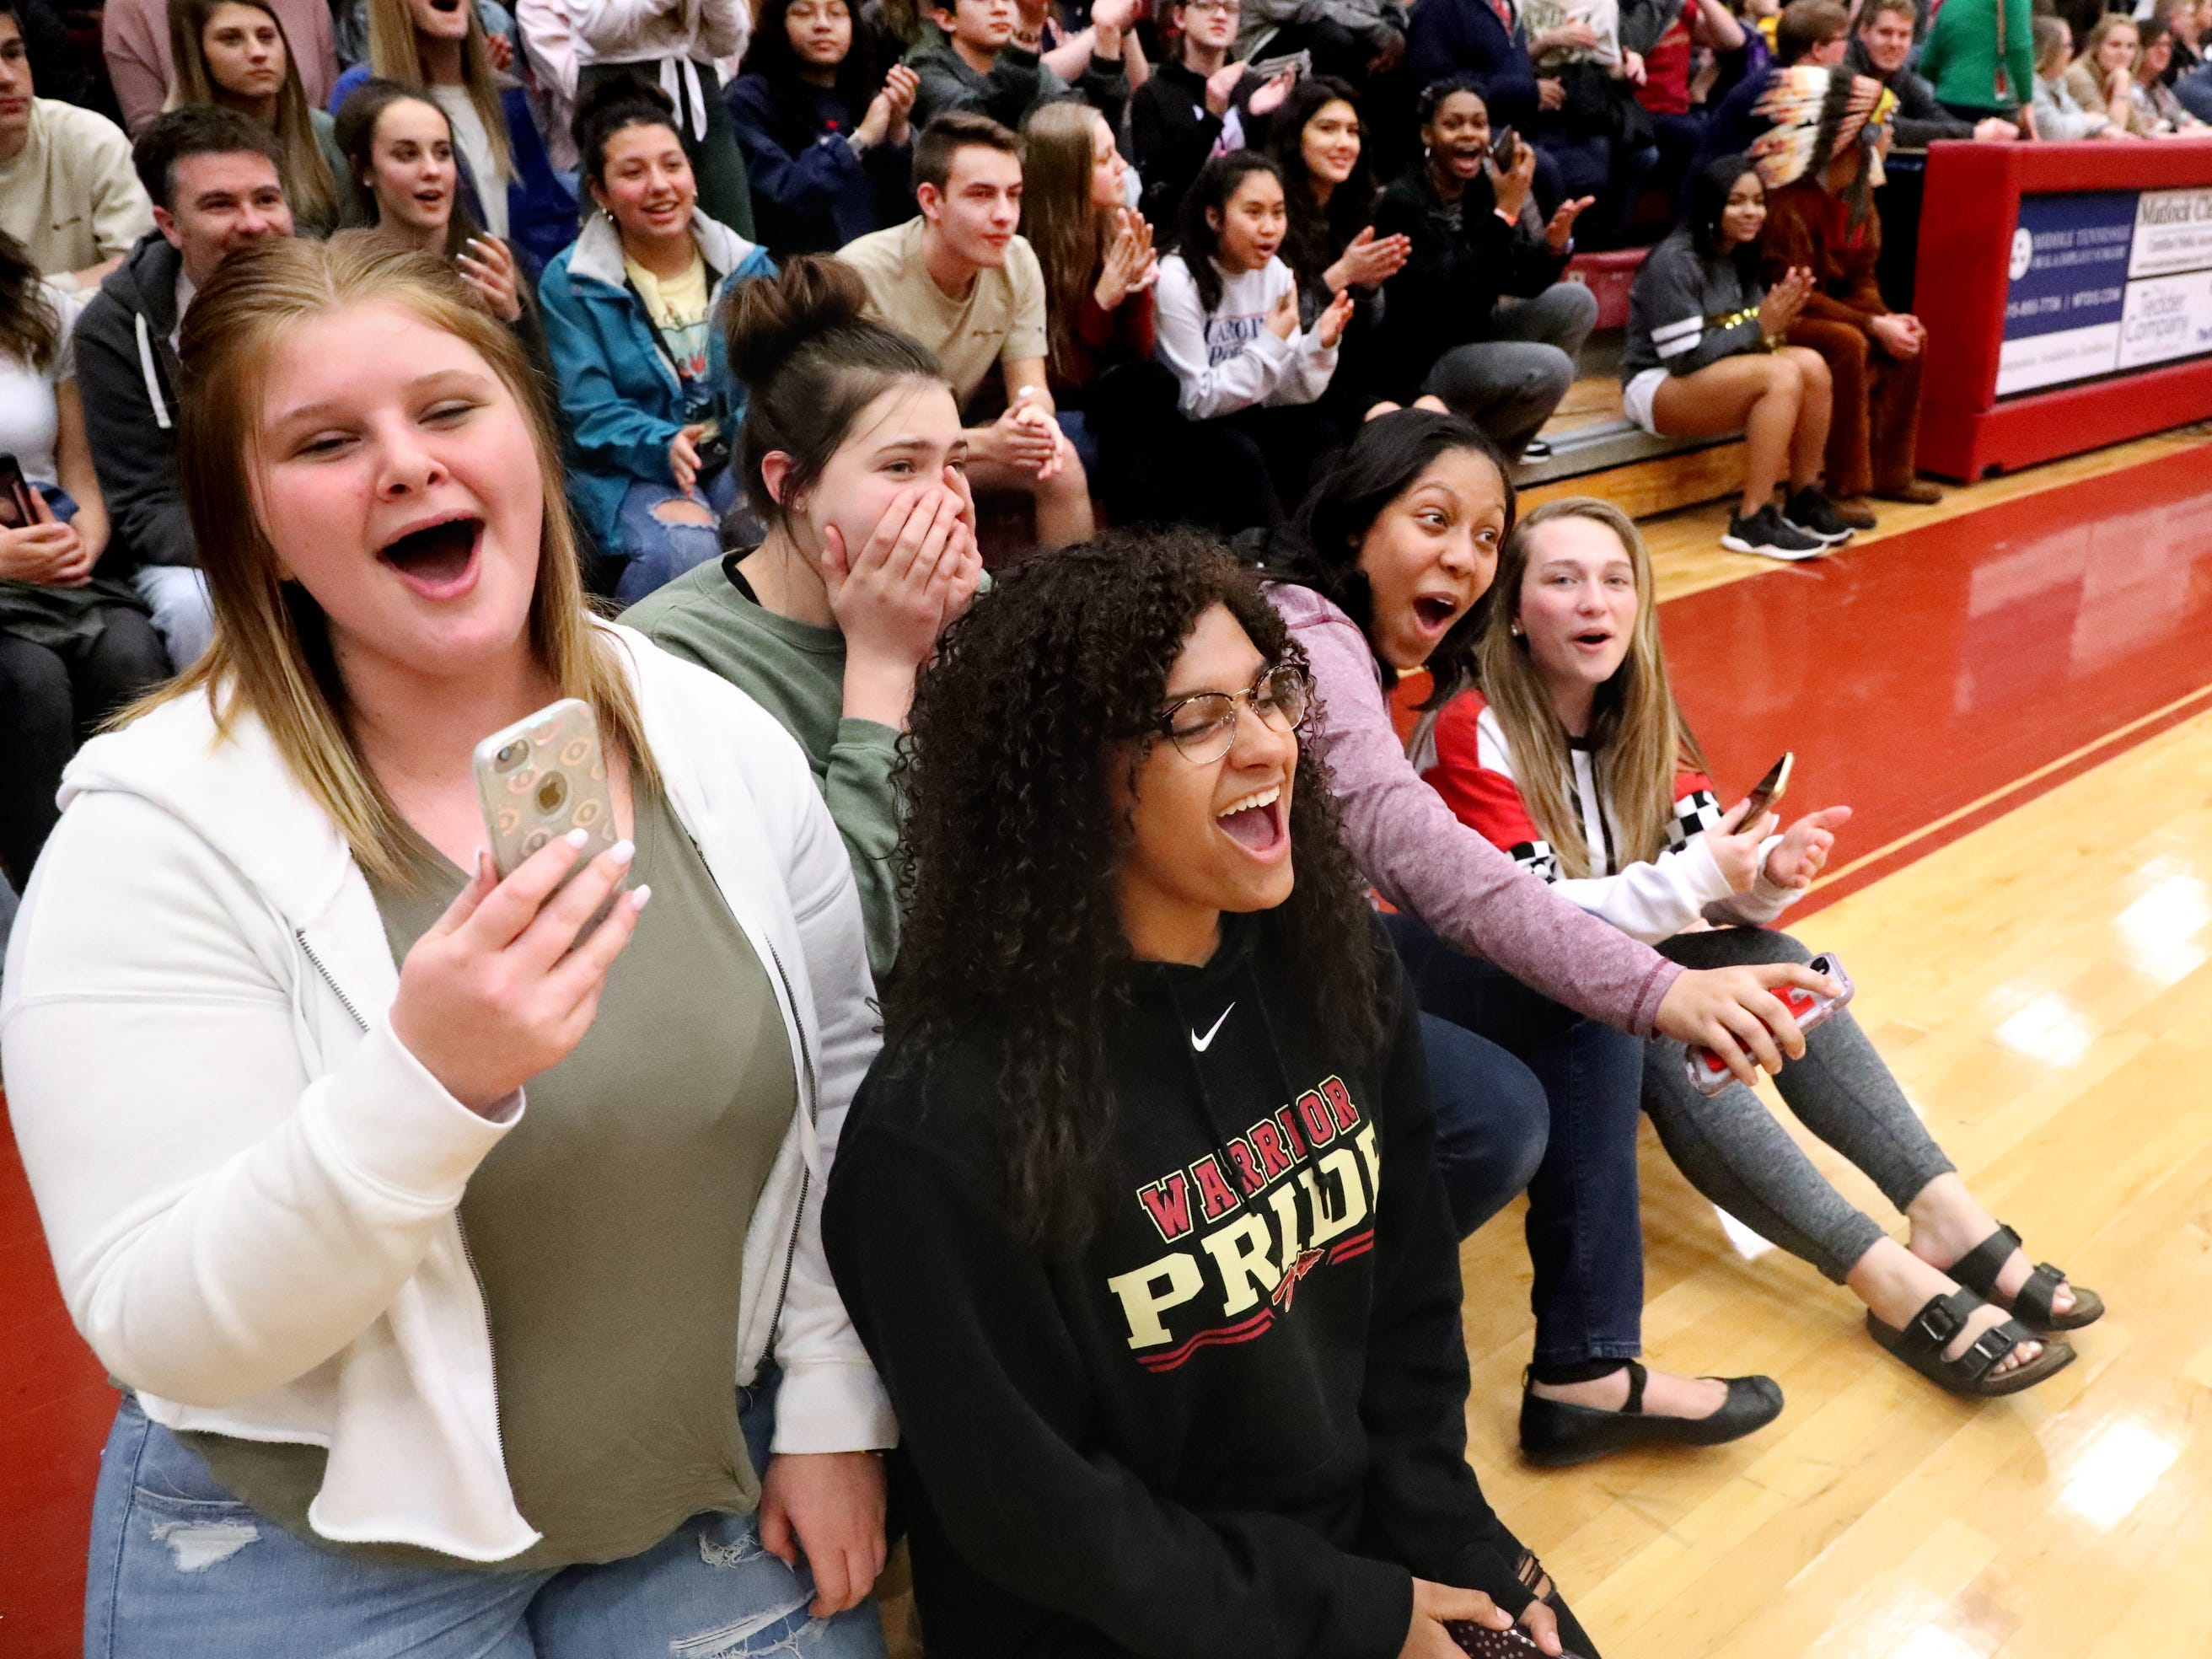 The crowd reacts as people get their hair shaved and cut during Riverdale High School's sixth annual Brave the Shave fundraiser to benefit St. Baldrick's Foundation on Thursday, March 21, 2019. The organization raises funds and awareness for childhood cancer.